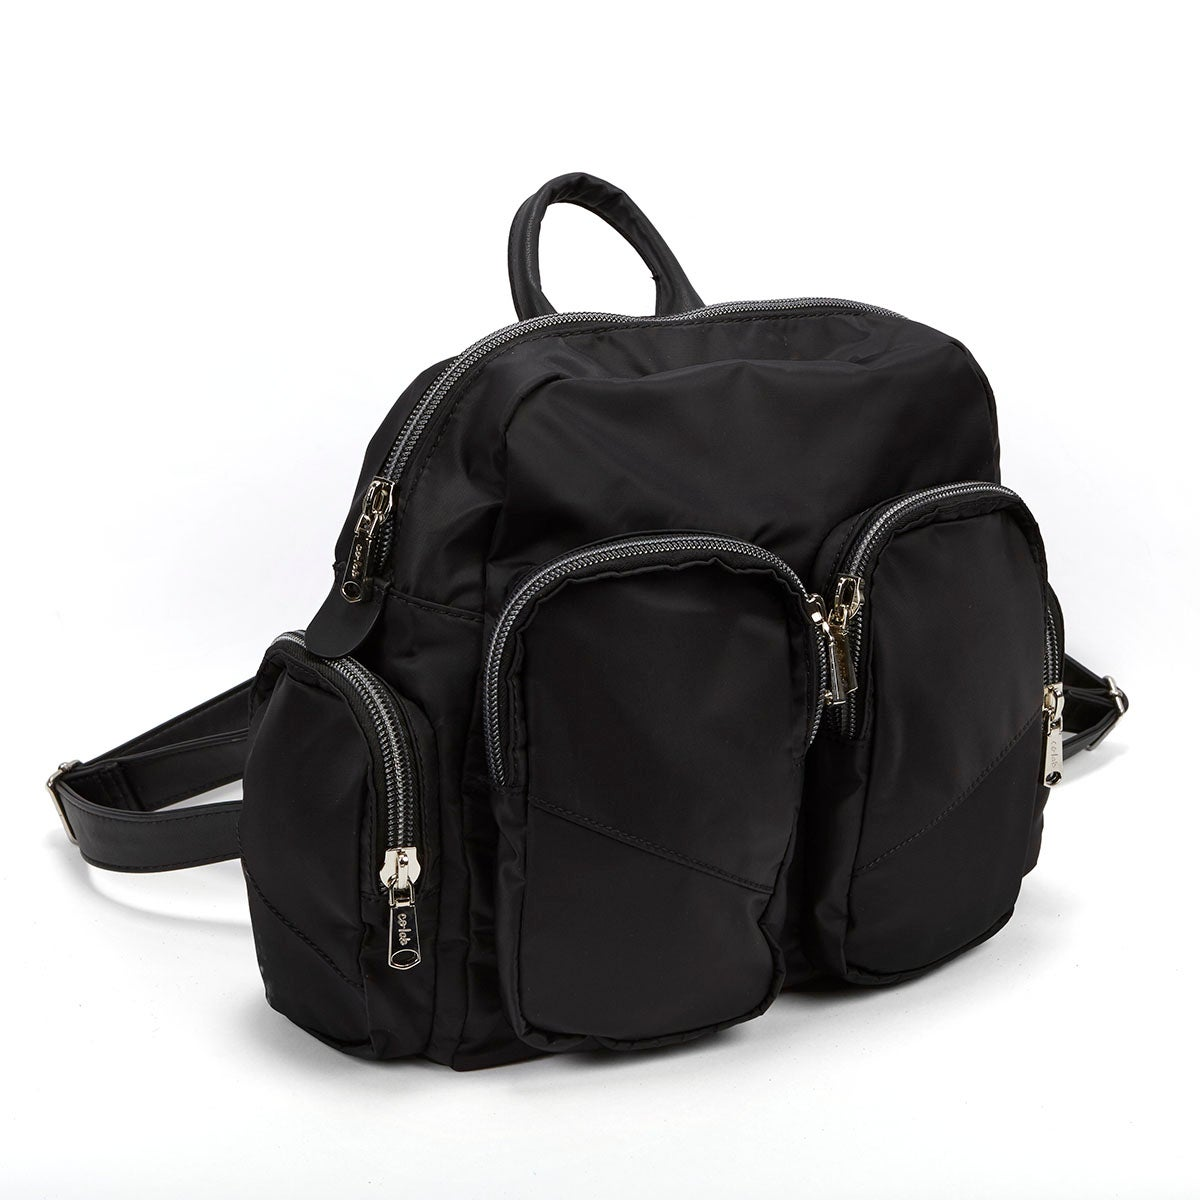 Lds Casual black nylon backpack